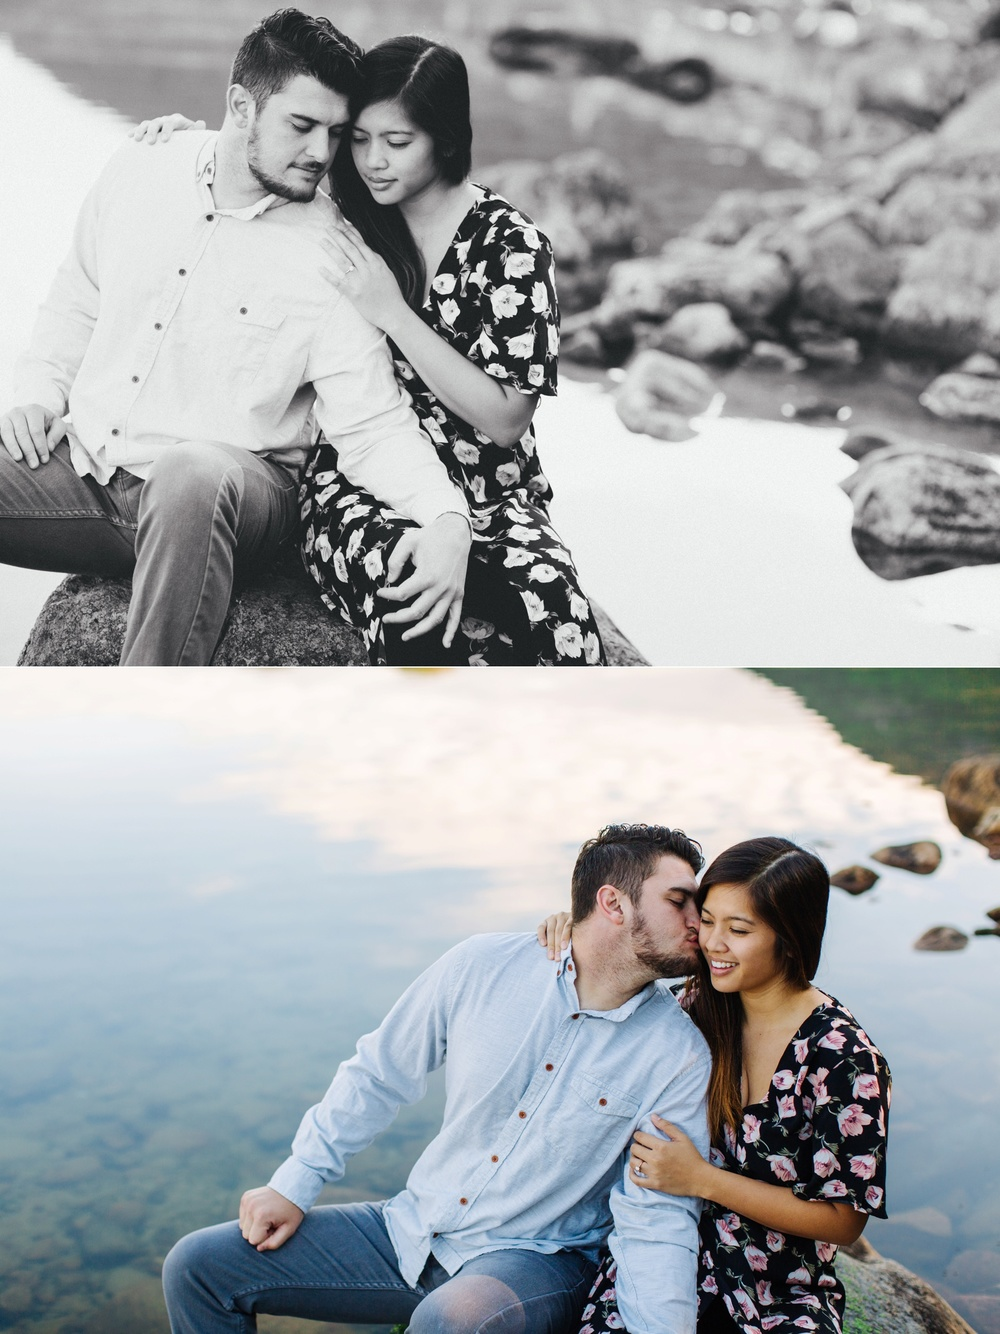 jake and jill acacdia national park engagement session cadillac mountain engagement session jordan pond engagement session maine engagement session jake and katie_0029